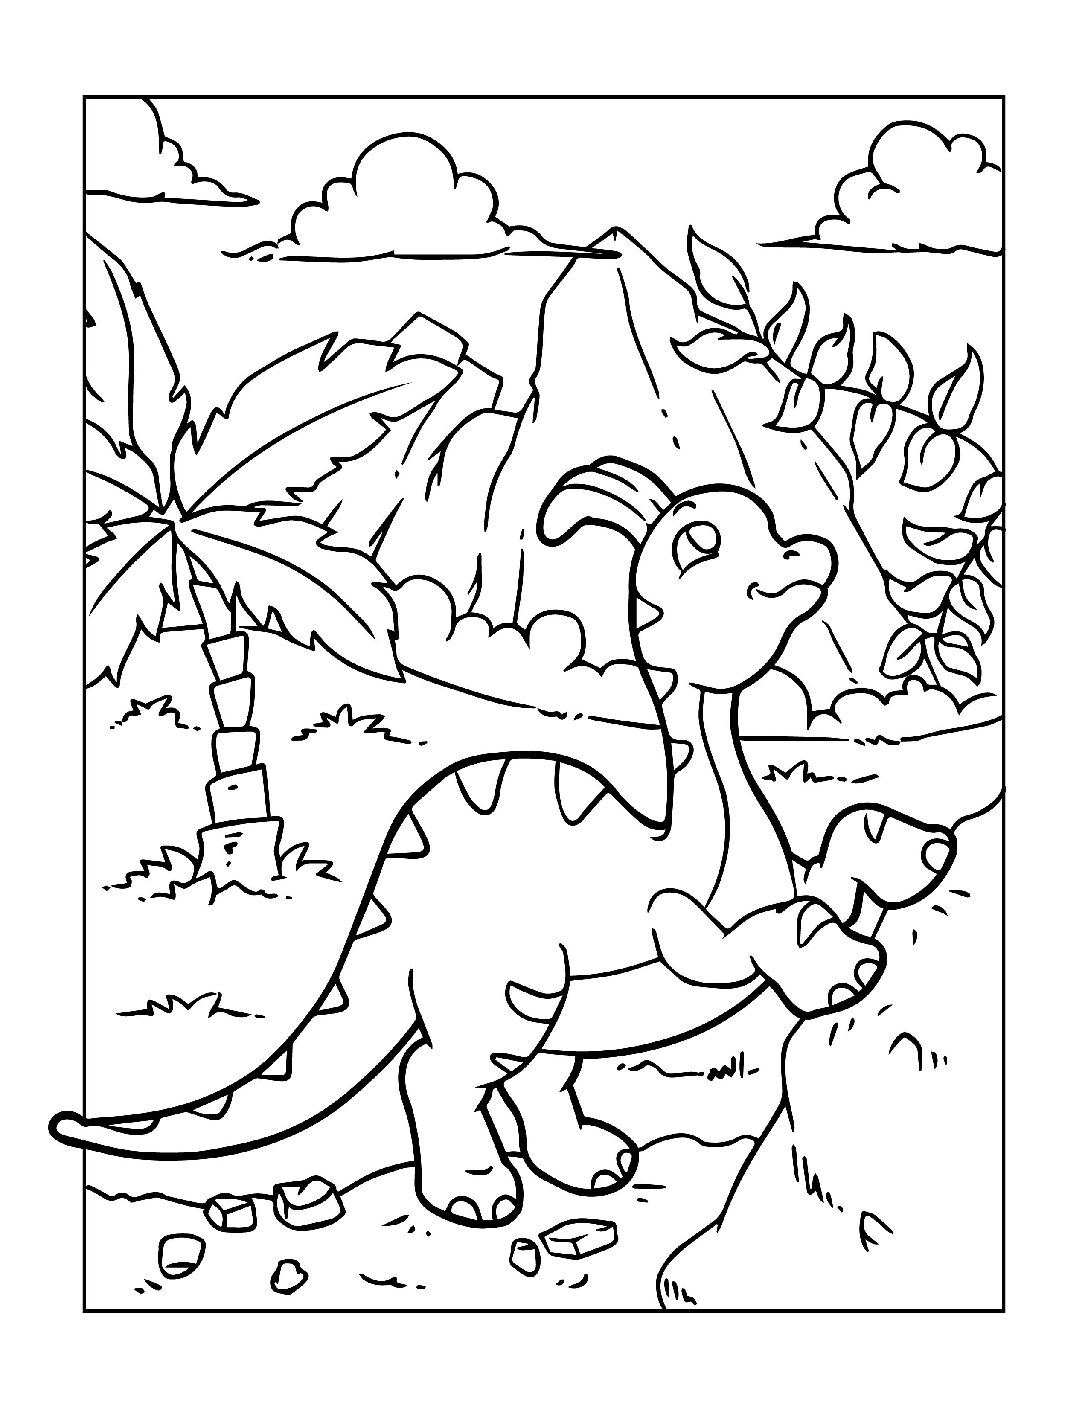 Coloring-Pages-Dinosaur-10-pdf Free Printable Dinasour Colouring Pages